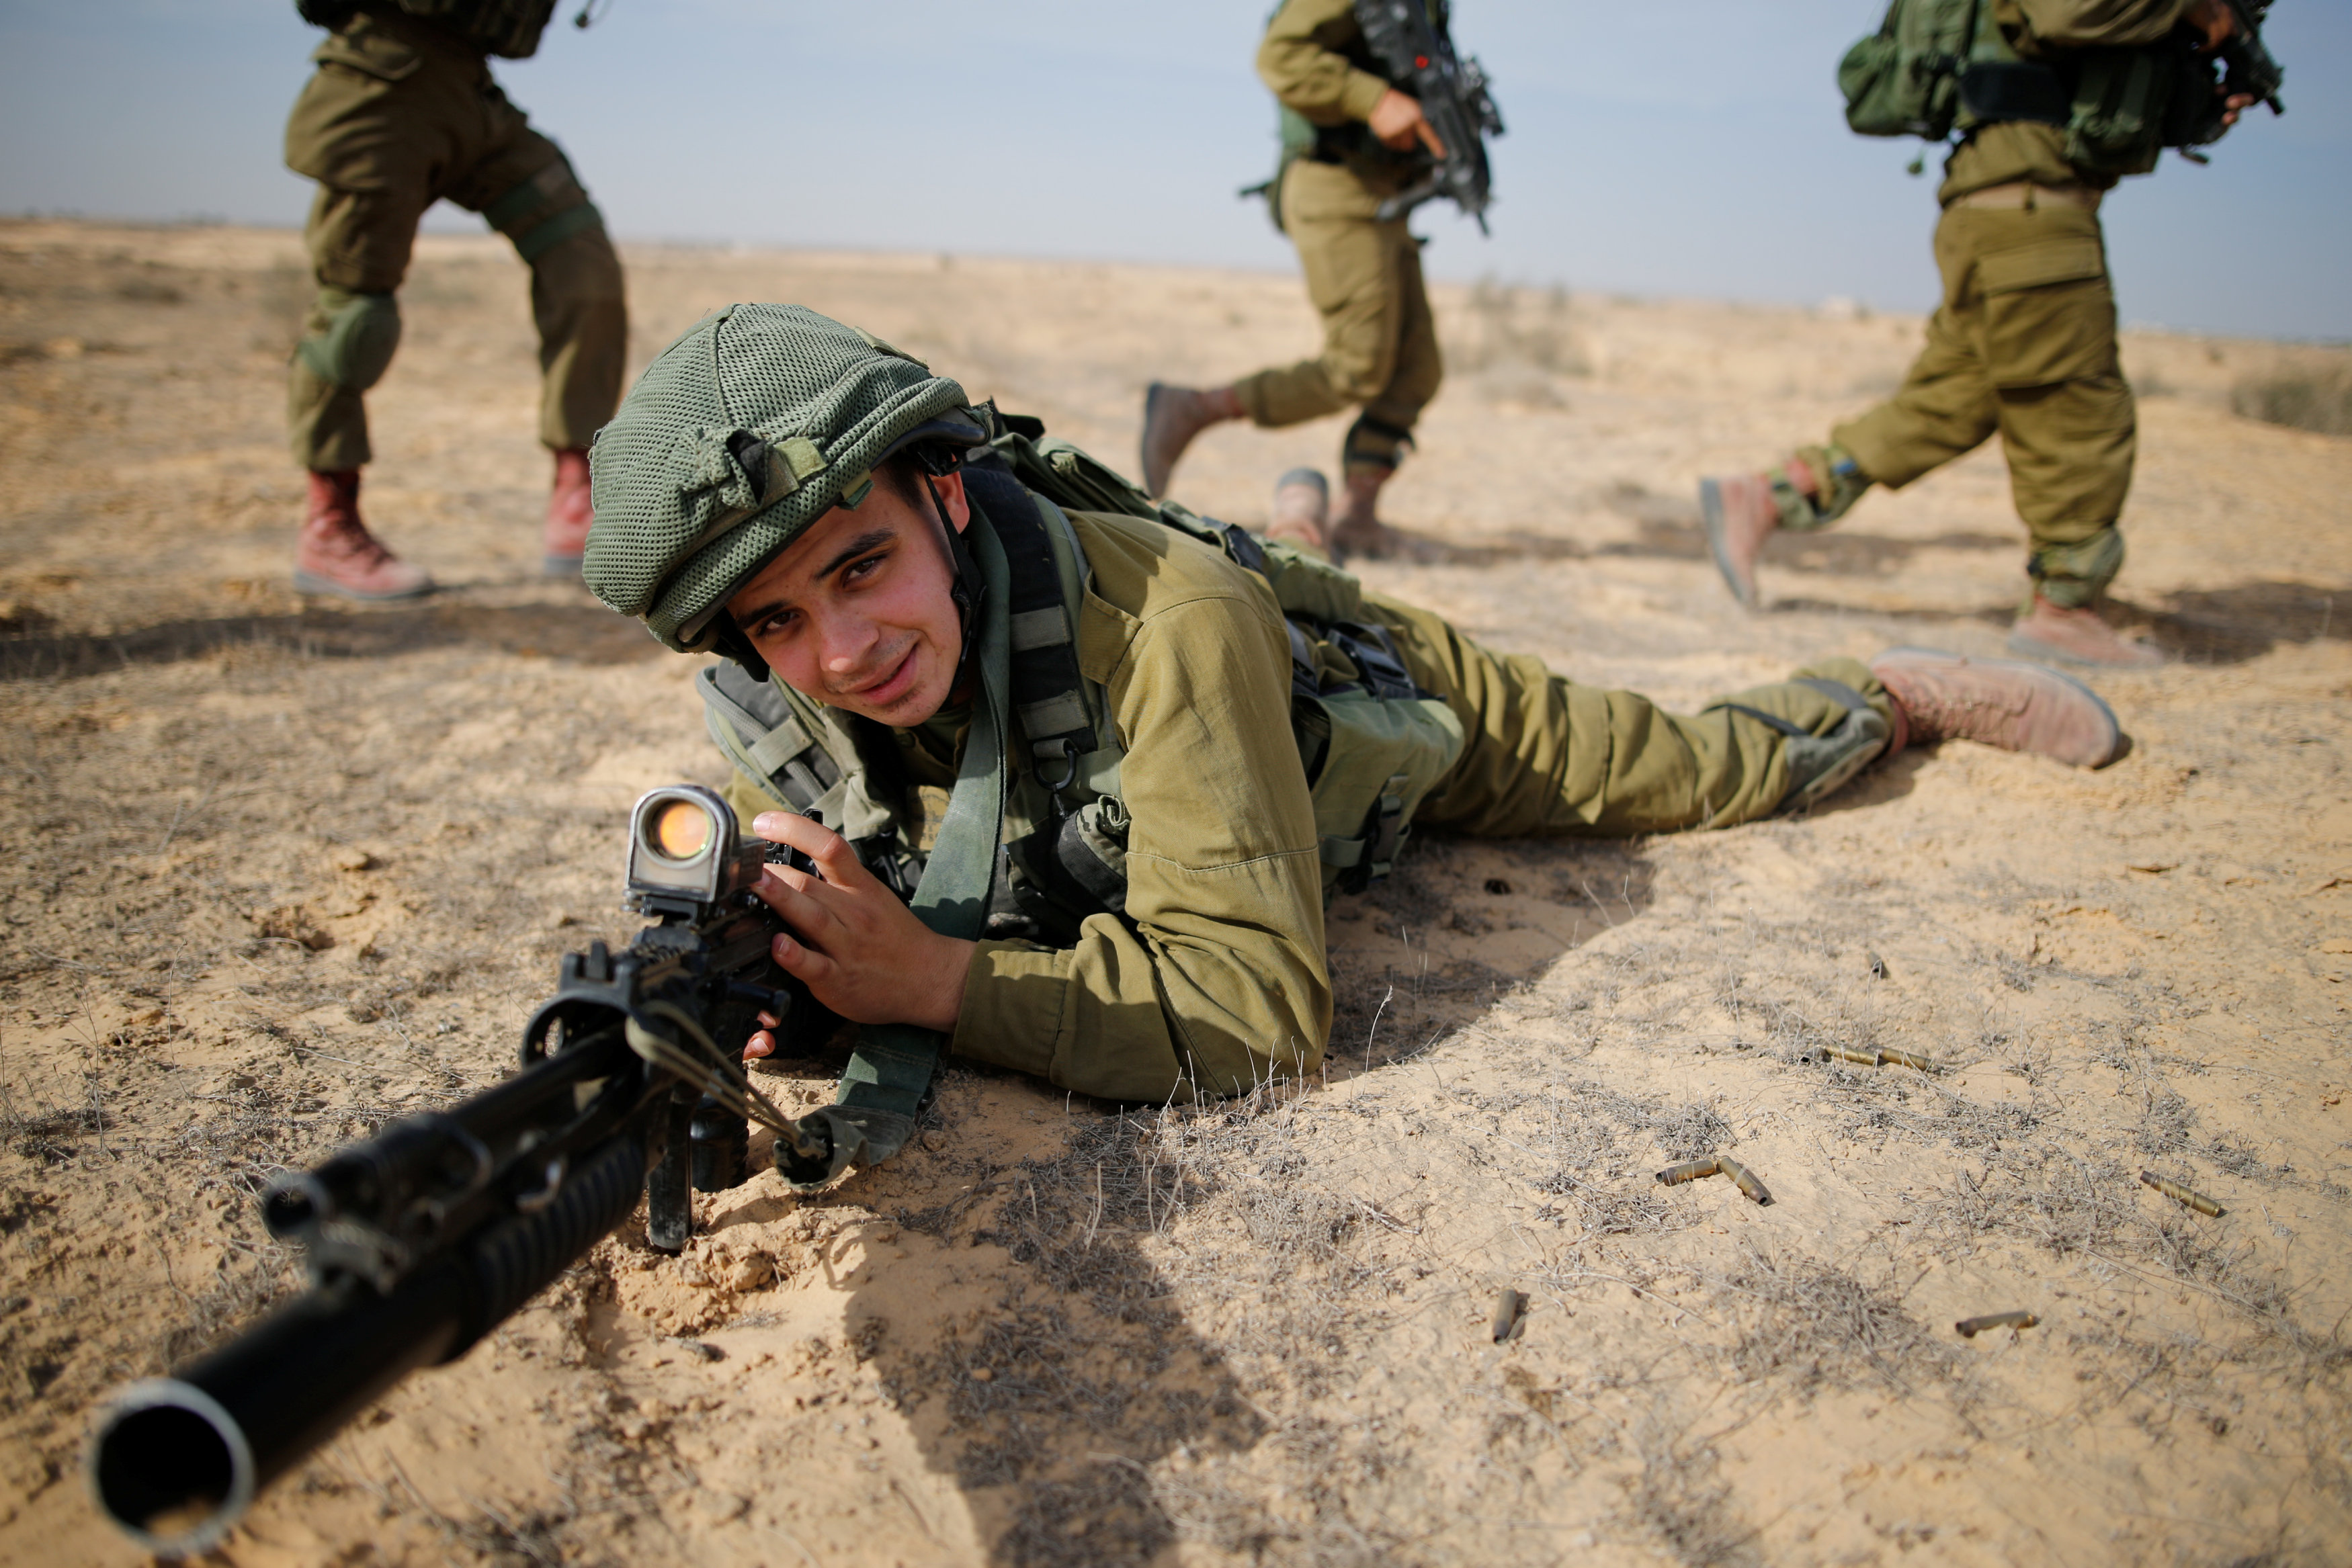 Saleh Khalil, 20, an Israeli Arab soldier from the Desert Reconnaissance battalion takes part in a drill near Kissufim in southern Israel